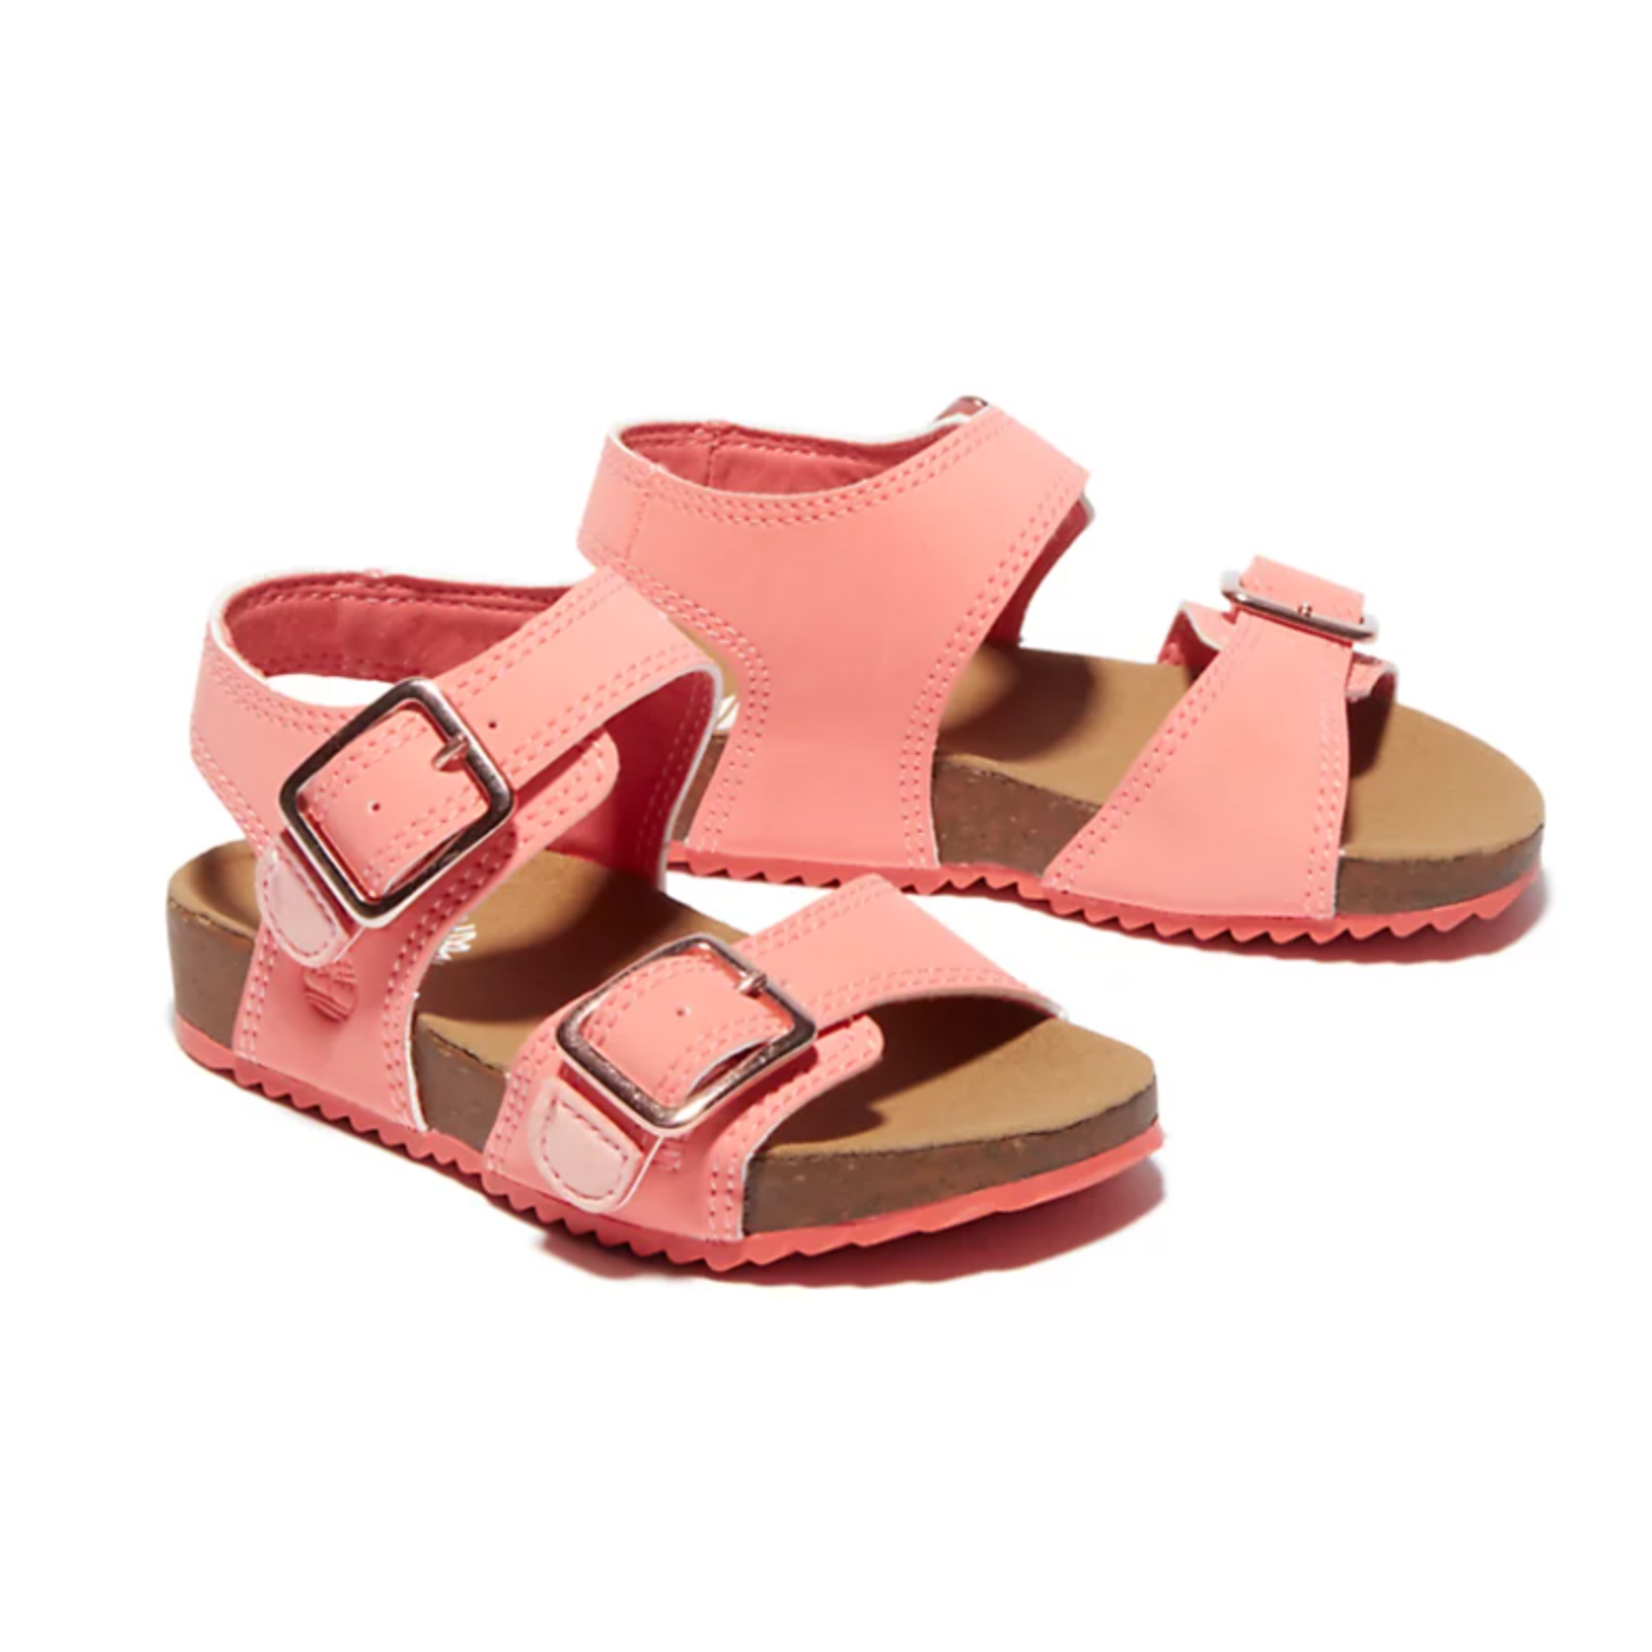 Timberland CASTLE ISLAND SANDAL FOR TODDLER IN PINK